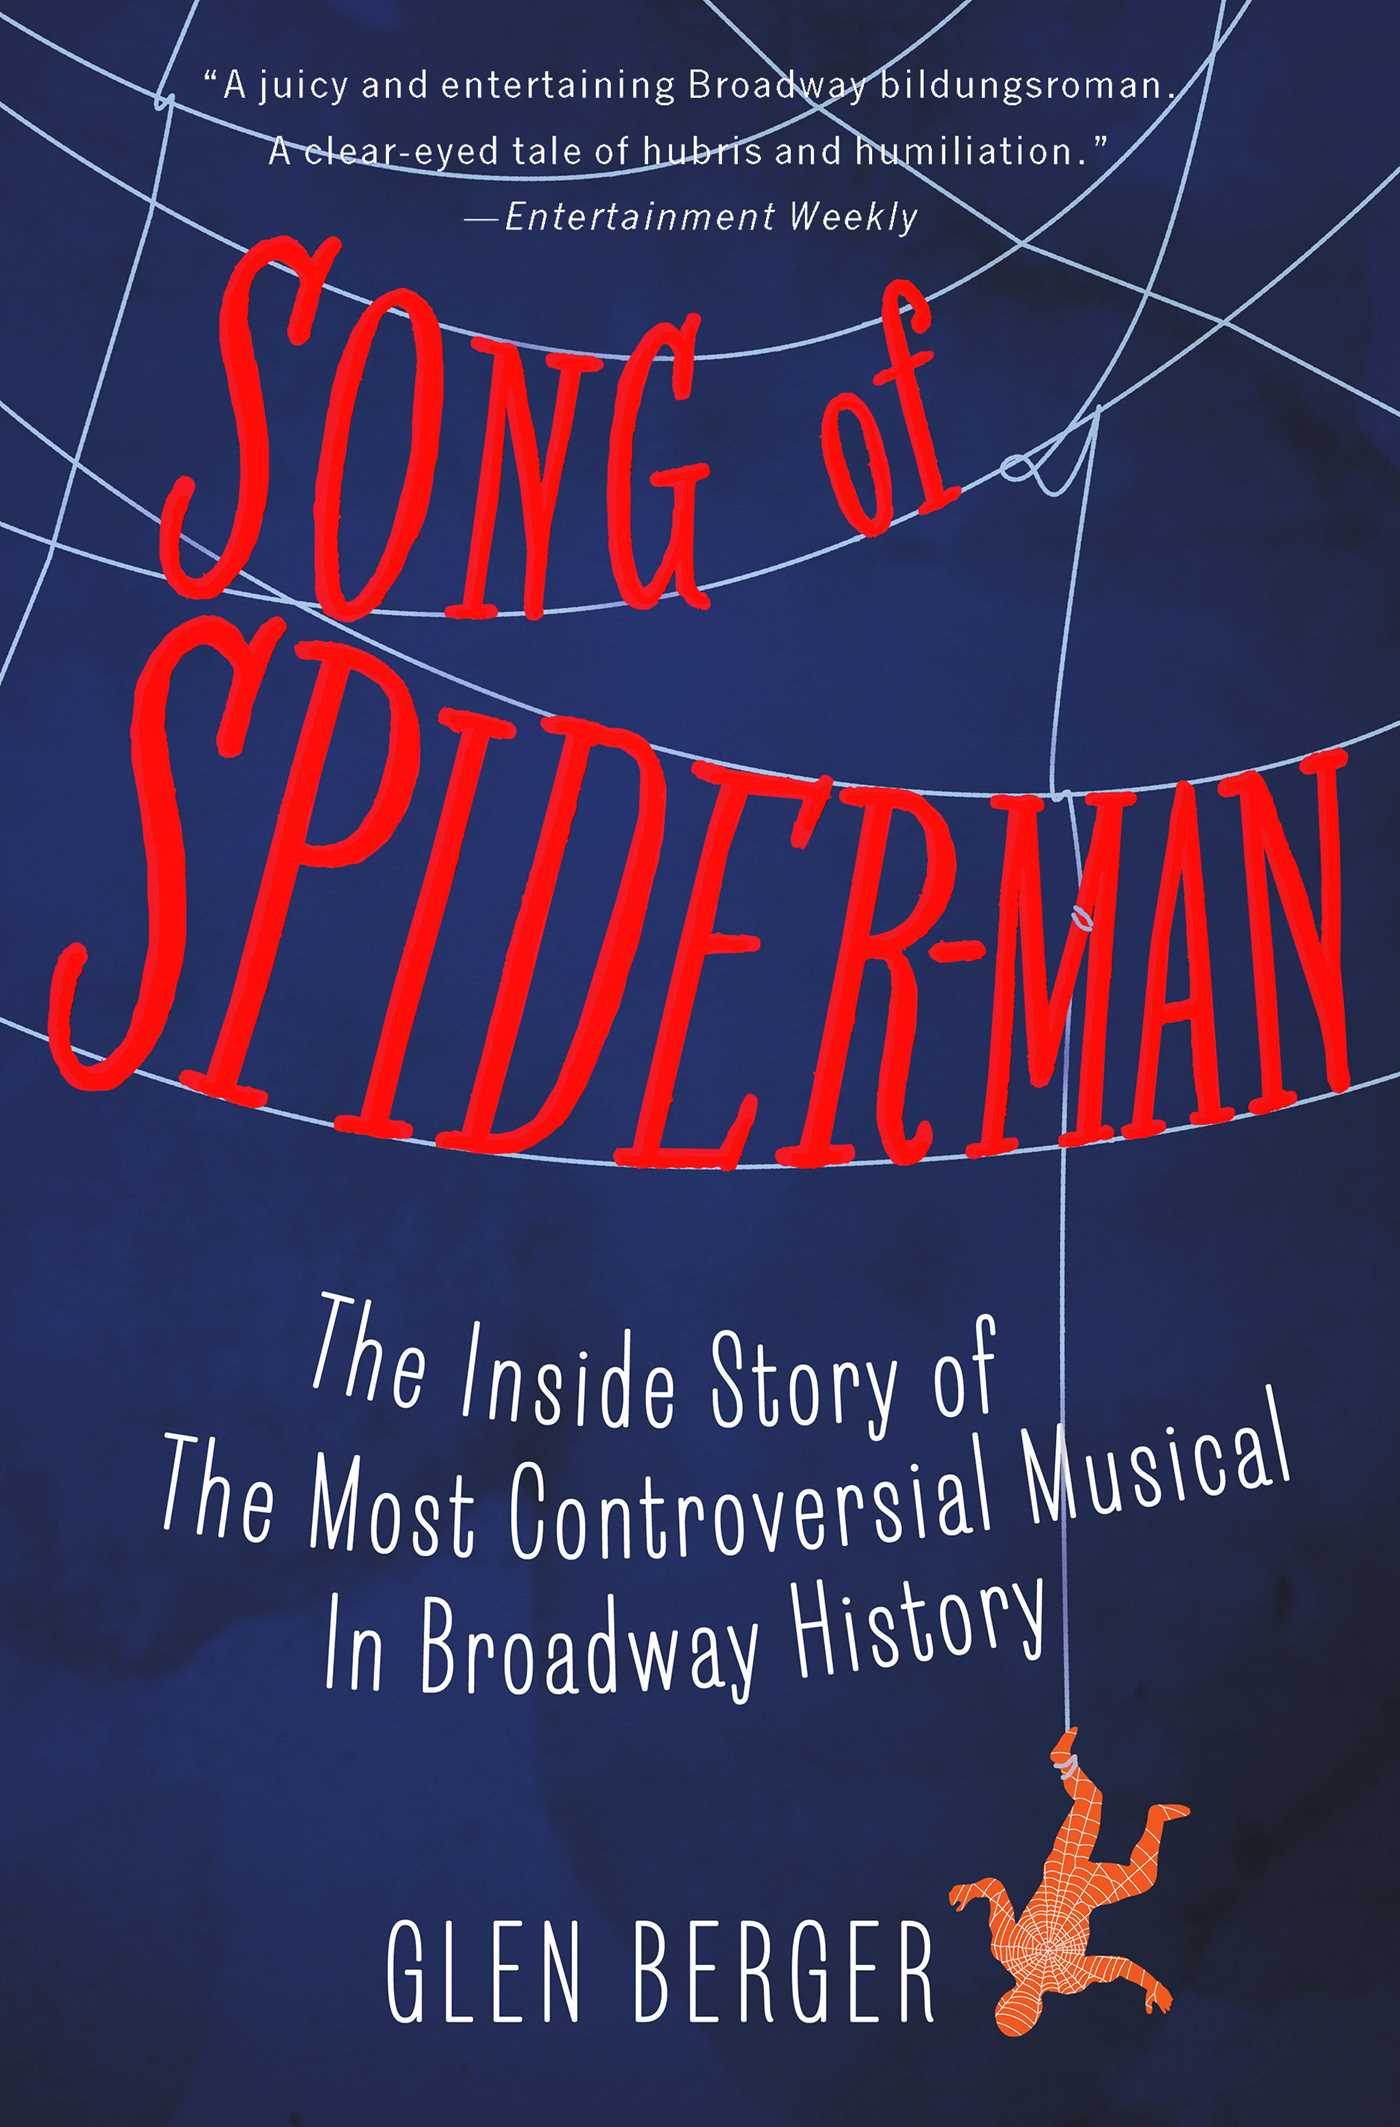 Song-of-spider-man-9781451684582_hr